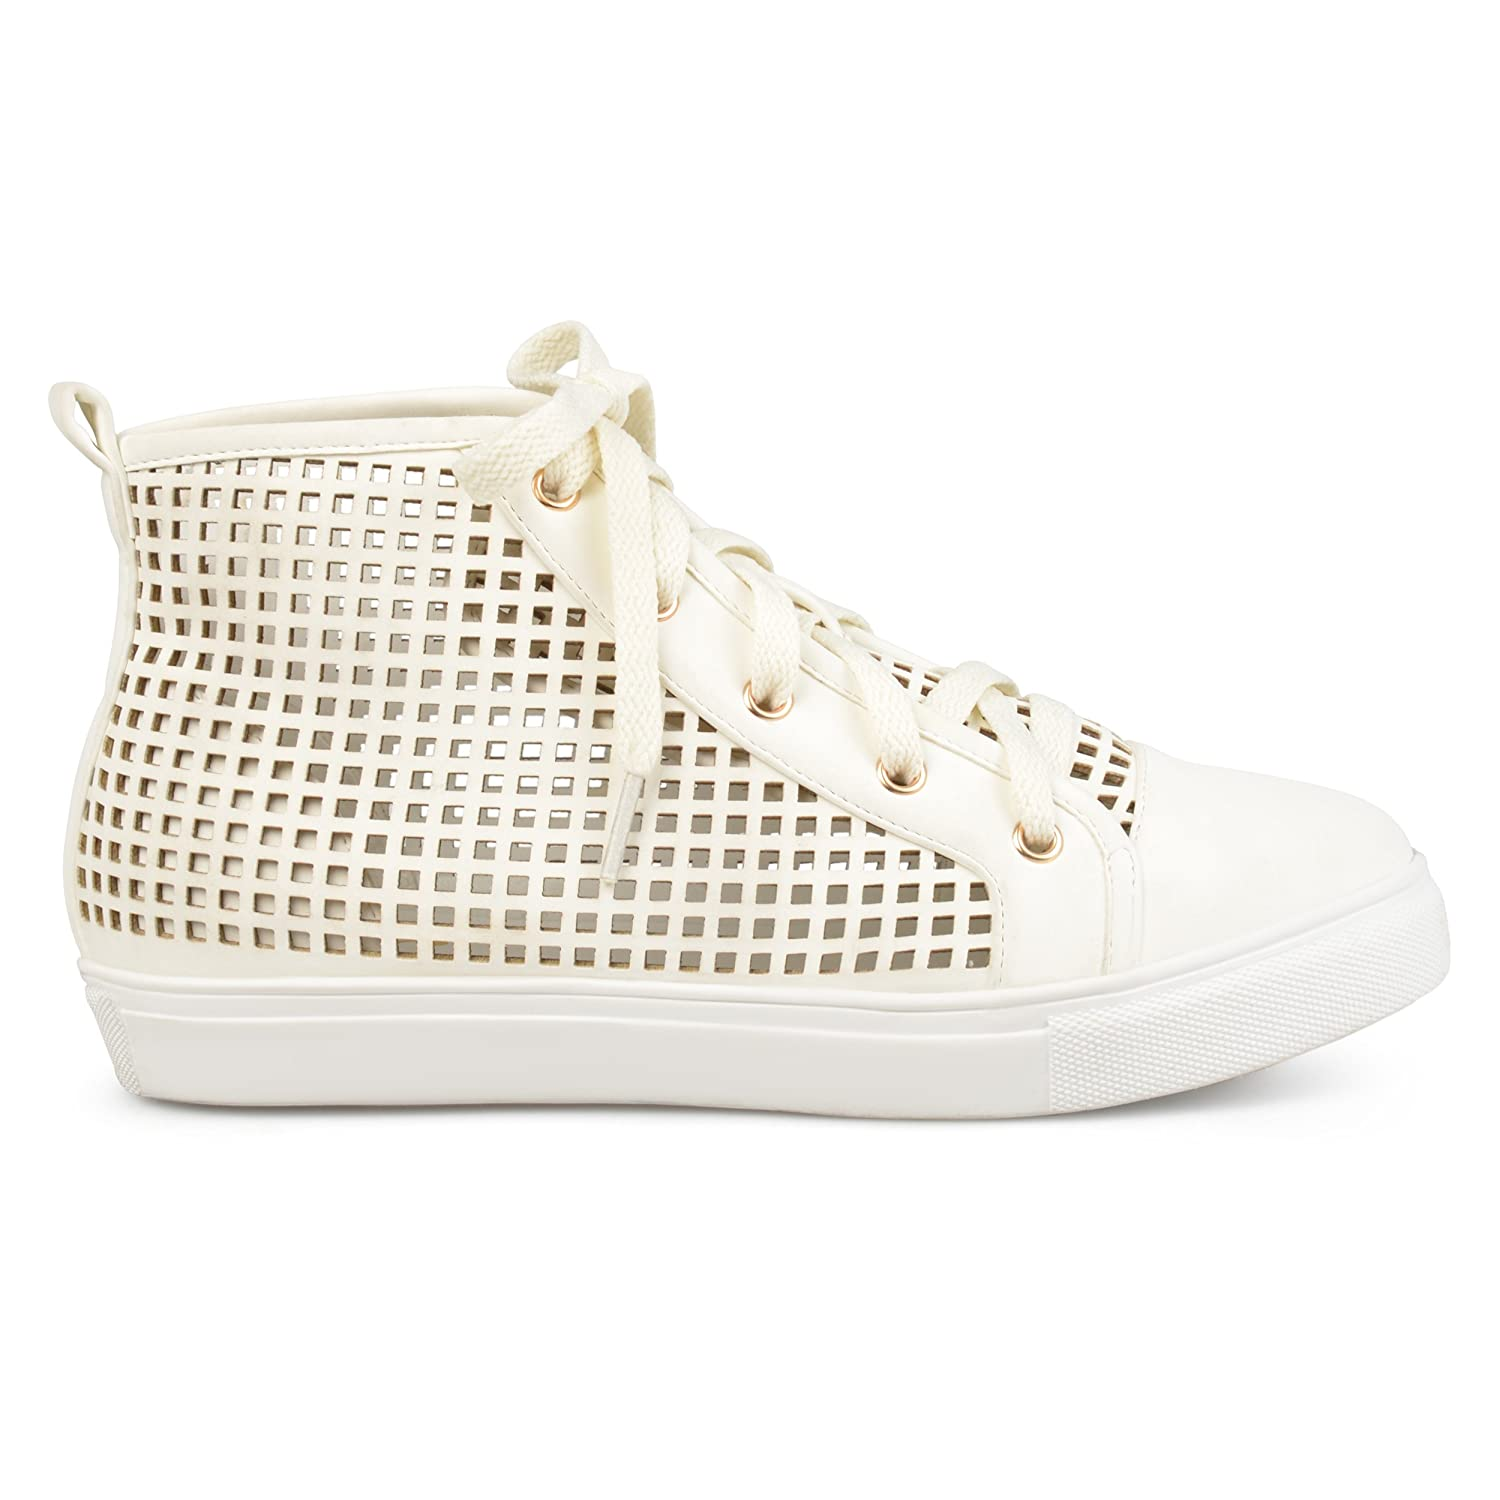 Brinley Co Womens Faux Leather High-Top Lace-up Laser-Cut Sneakers B073RRJYRH 9 B(M) US|White